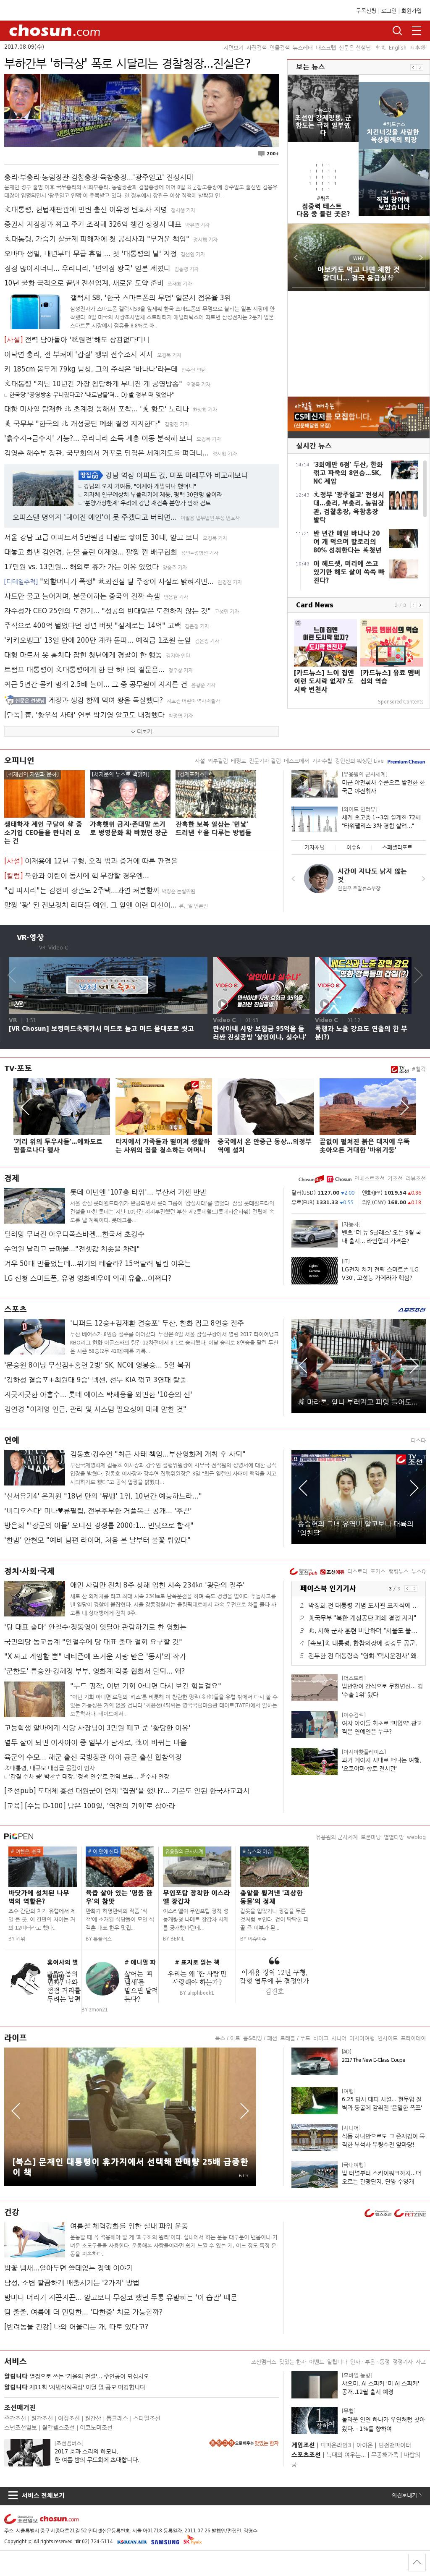 chosun.com at Tuesday Aug. 8, 2017, 4:02 p.m. UTC